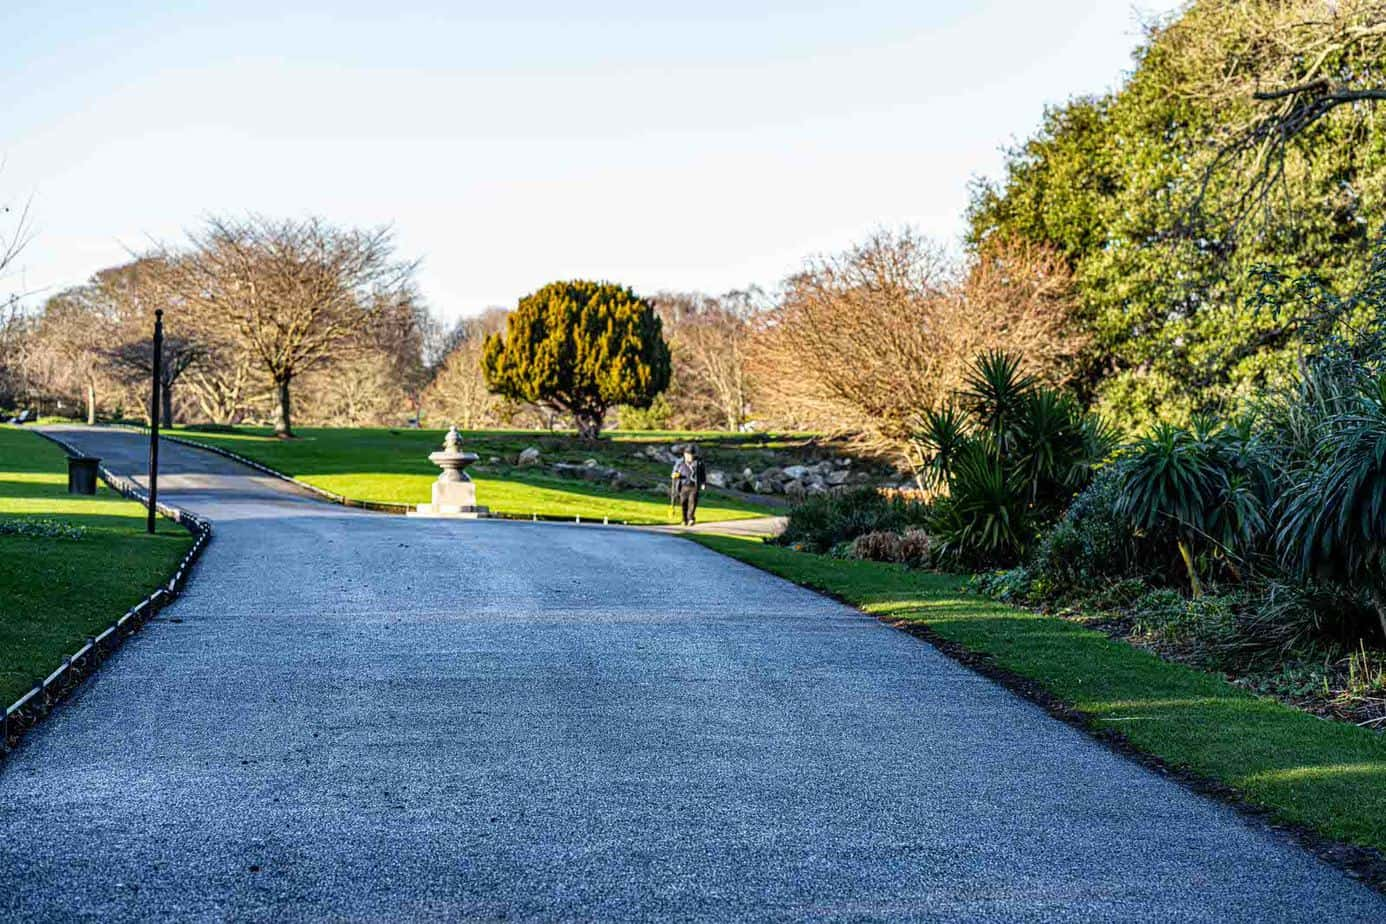 THE-PEOPLES-FLOWER-GARDENS-IN-PHOENIX-PARK-VICTORIAN-WATER-FOUNTAIN-159250-1